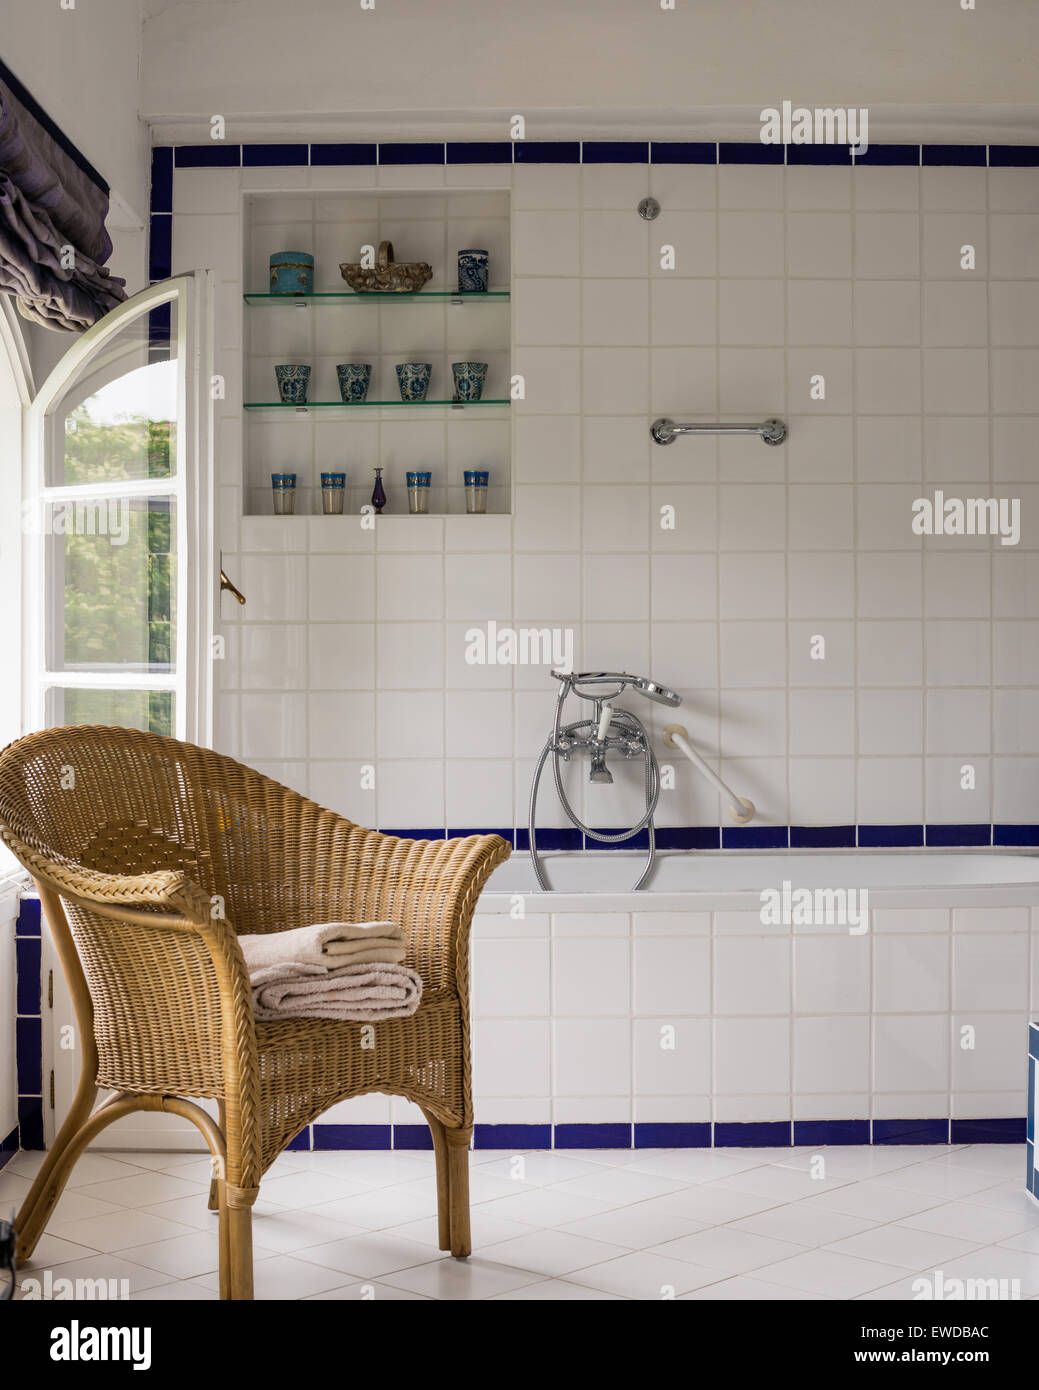 Wicker chair in tiled bathroom Stock Photo - Alamy